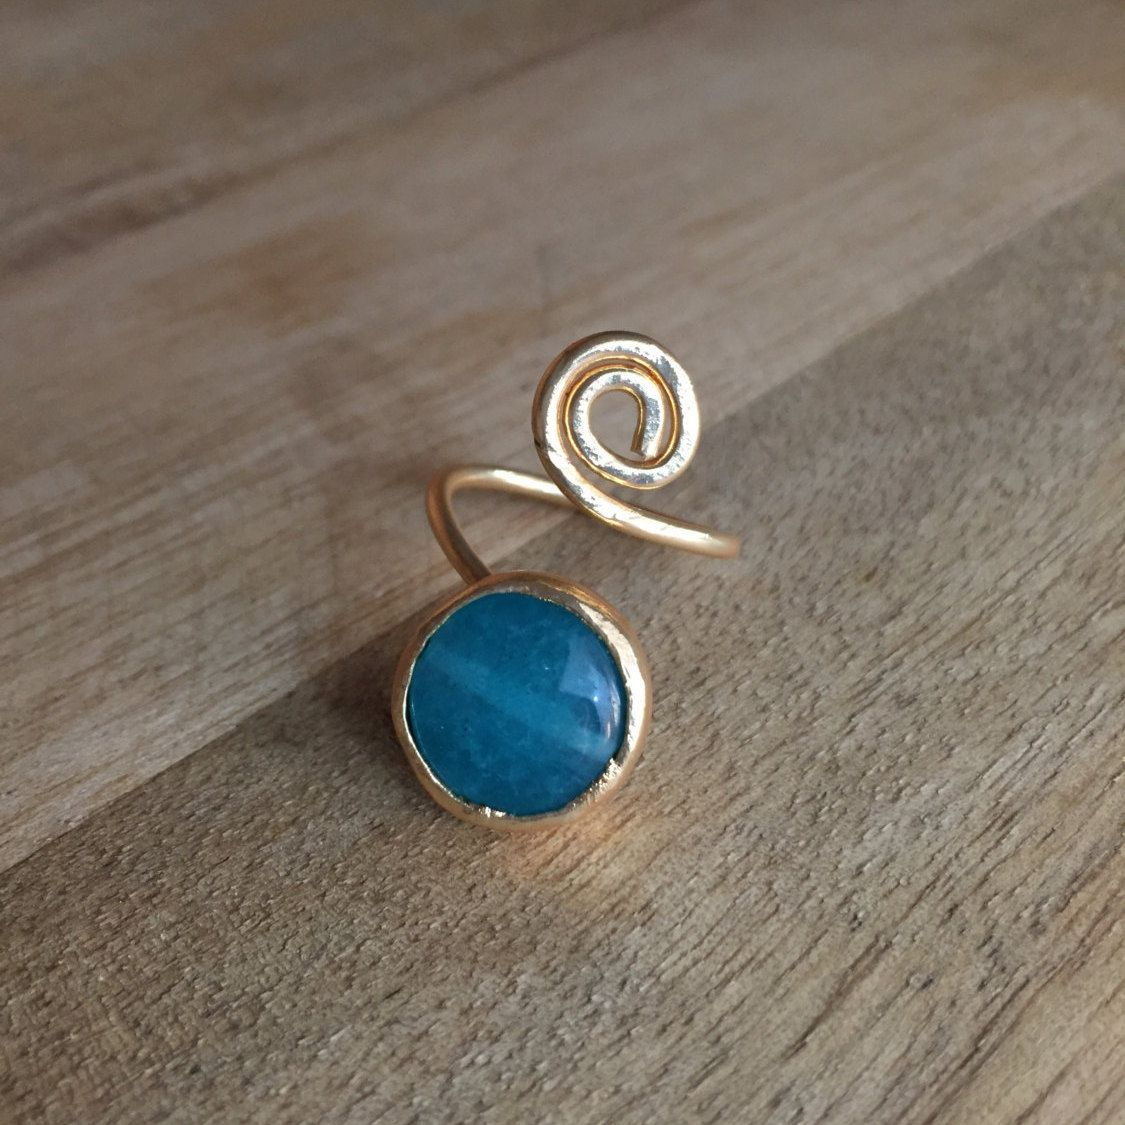 Bague Calcédoine Bleue by HurremSultanJewelry on Etsy